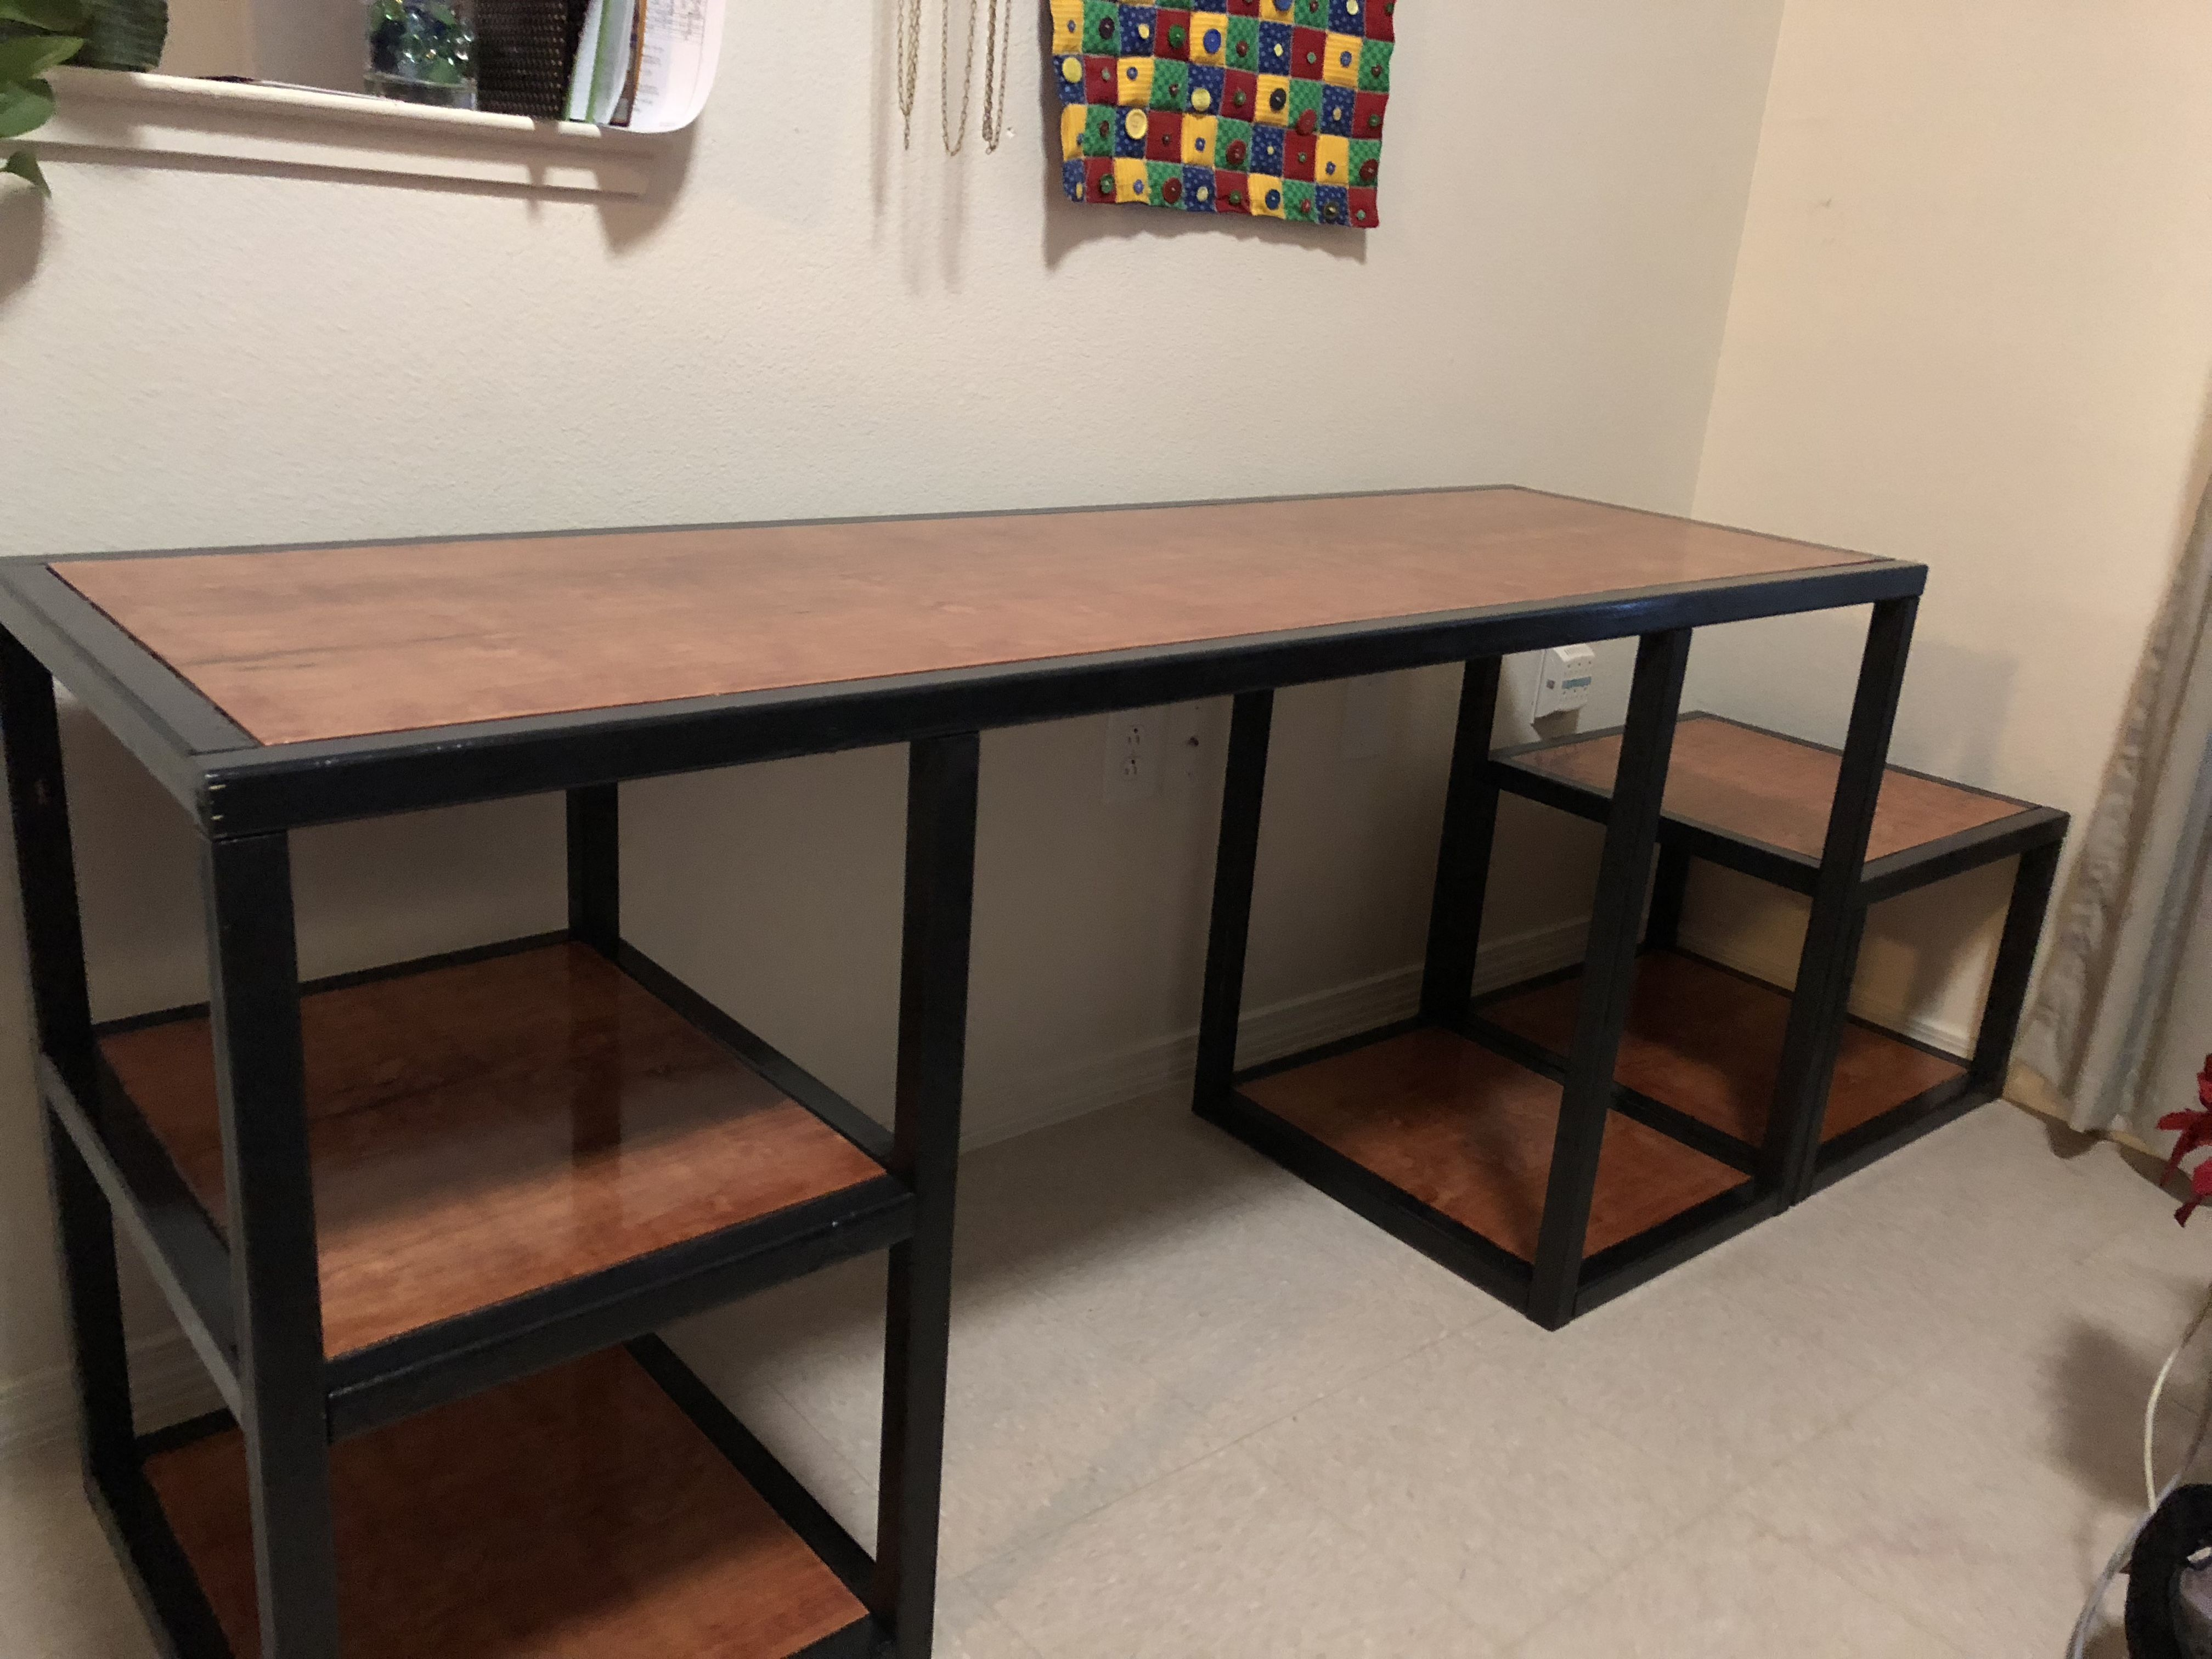 Ana White Parsons Desk Diy Projects Parsons Desk White Parsons Desk Diy Furniture